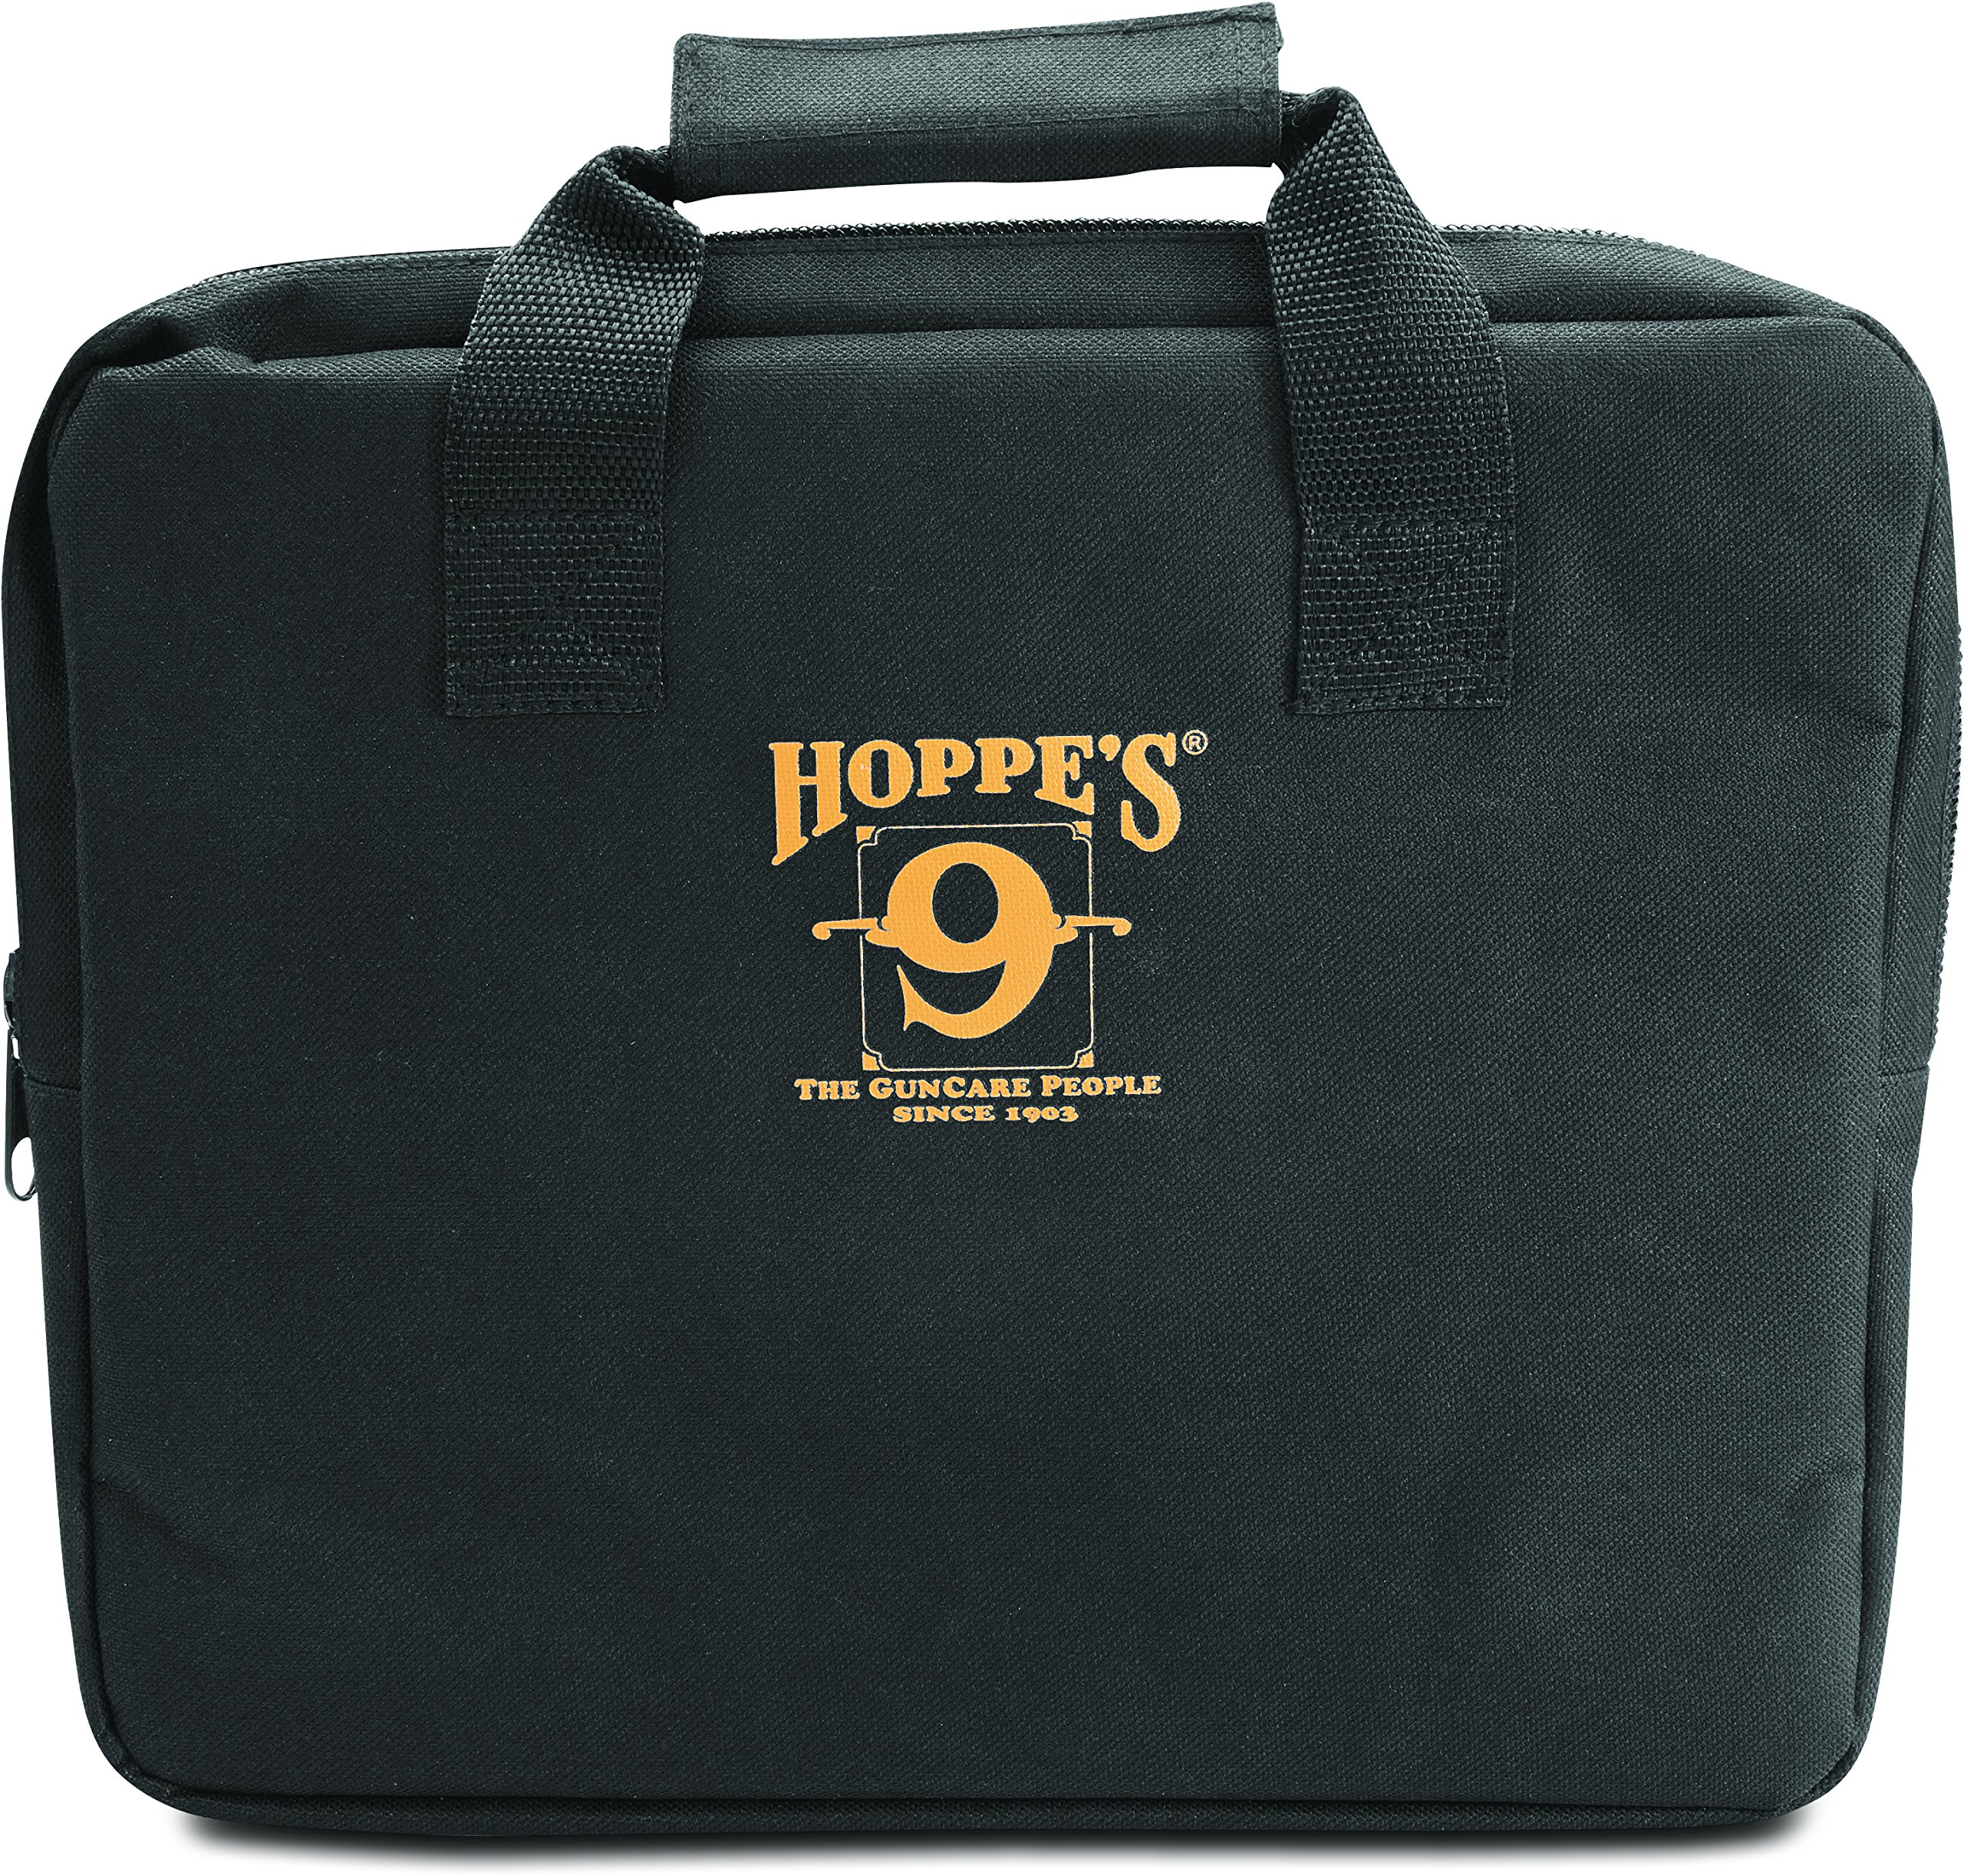 HOPPE'S Range Kit with Cleaning Mat by HOPPE'S